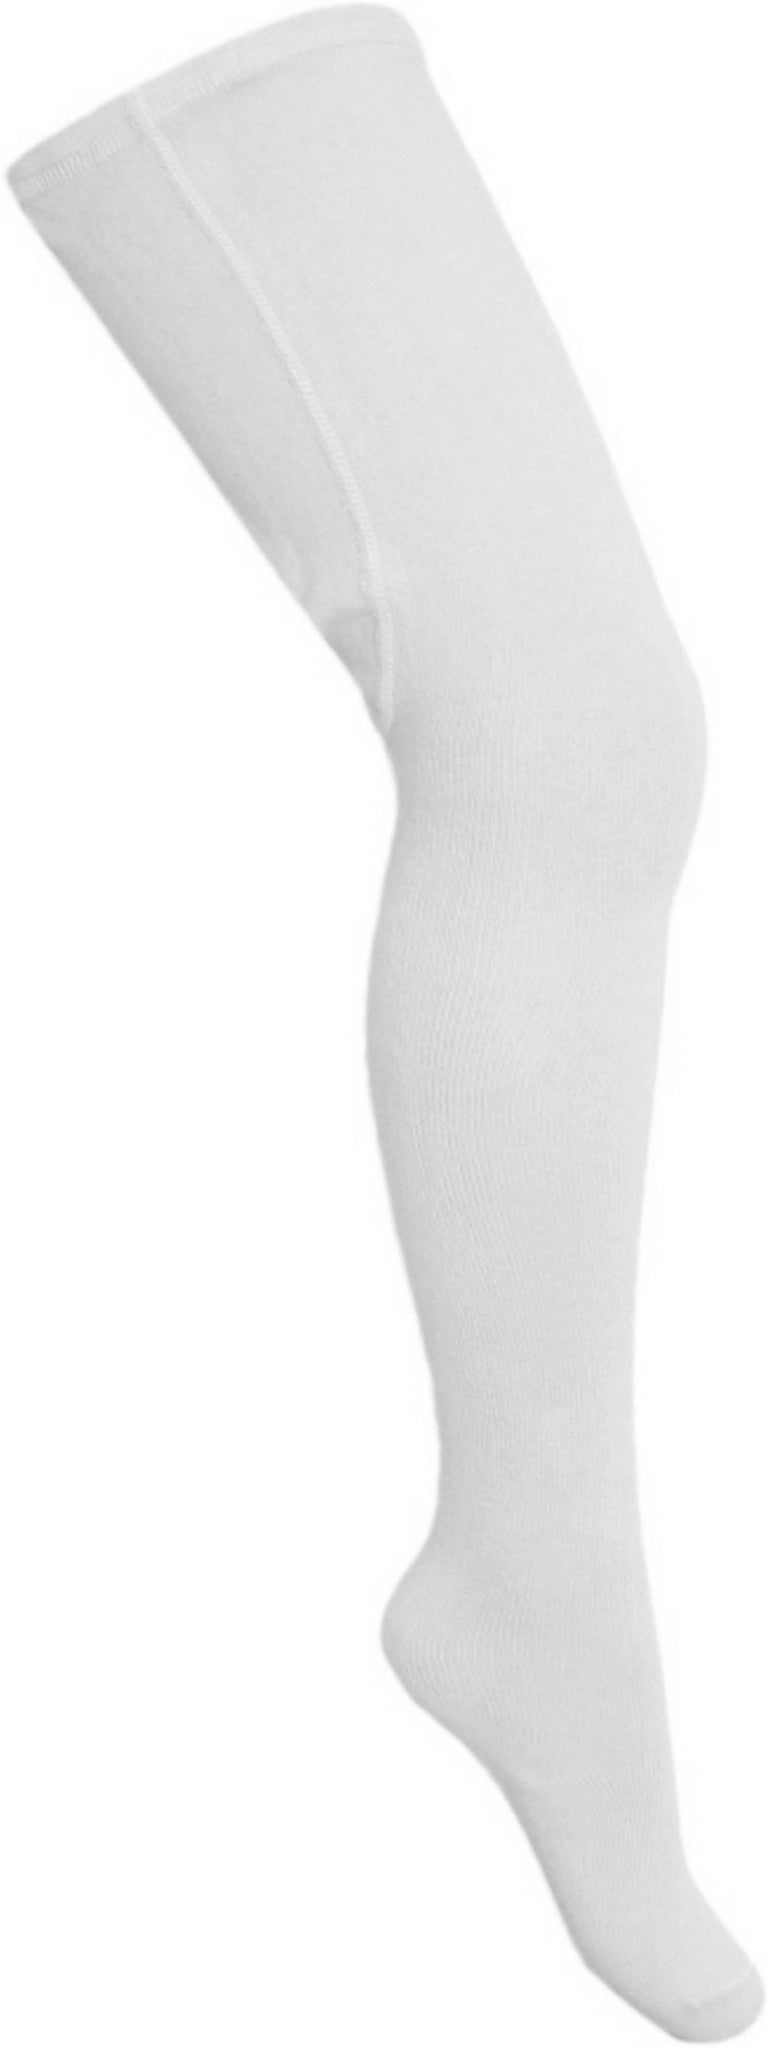 Miranda Socks & Tights Miranda White Tights 1501L